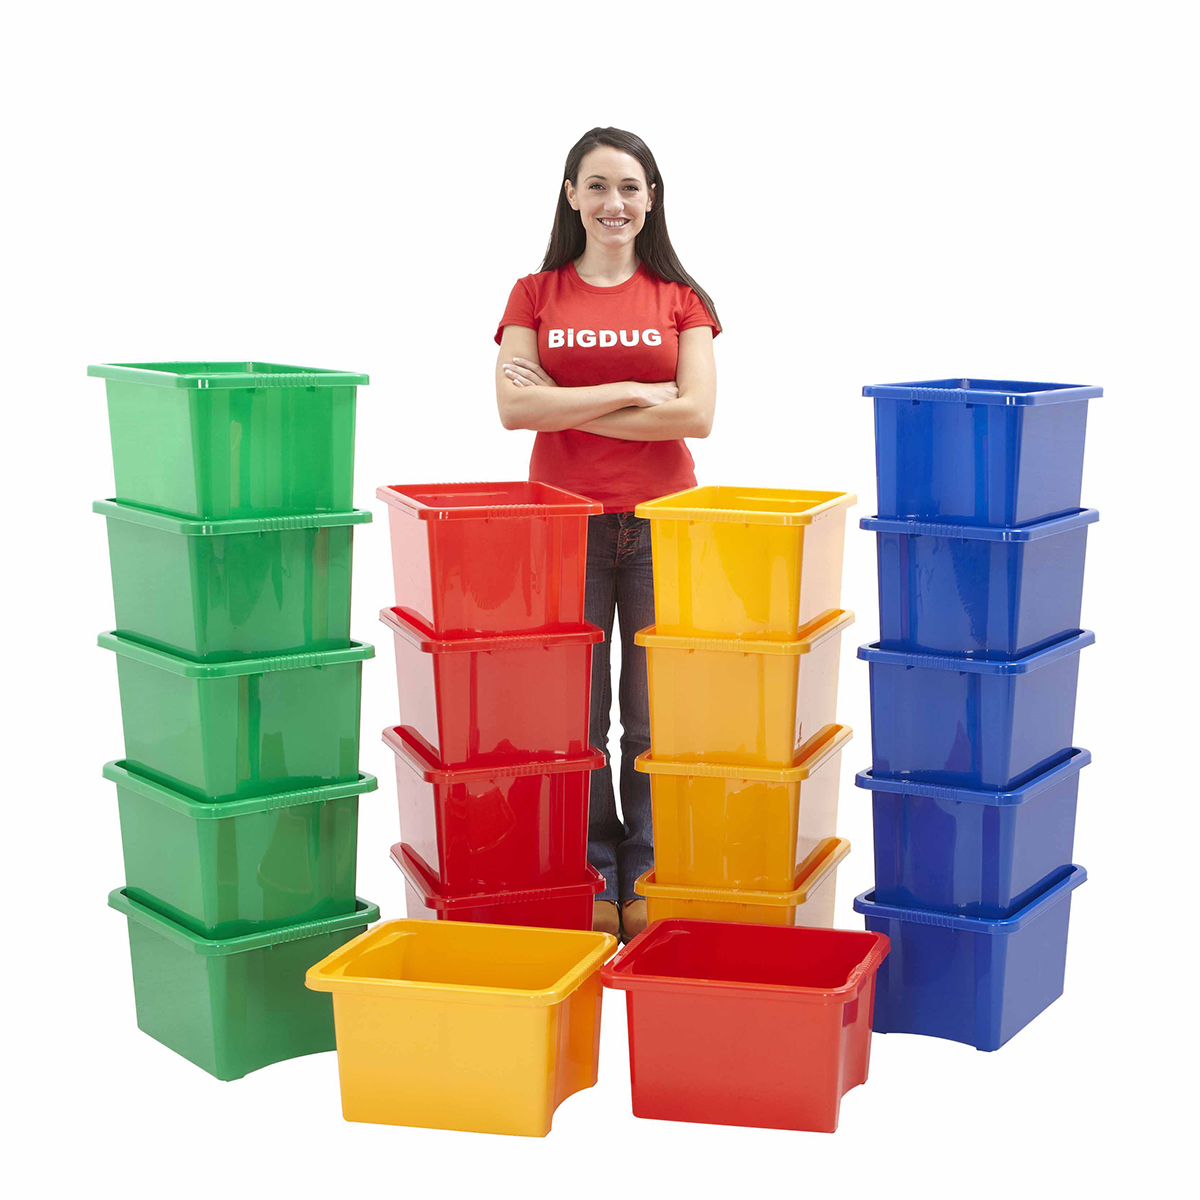 Plastikkisten Stapelbar Plastic Boxes 24 Litre Stackable Storage Containers Garage